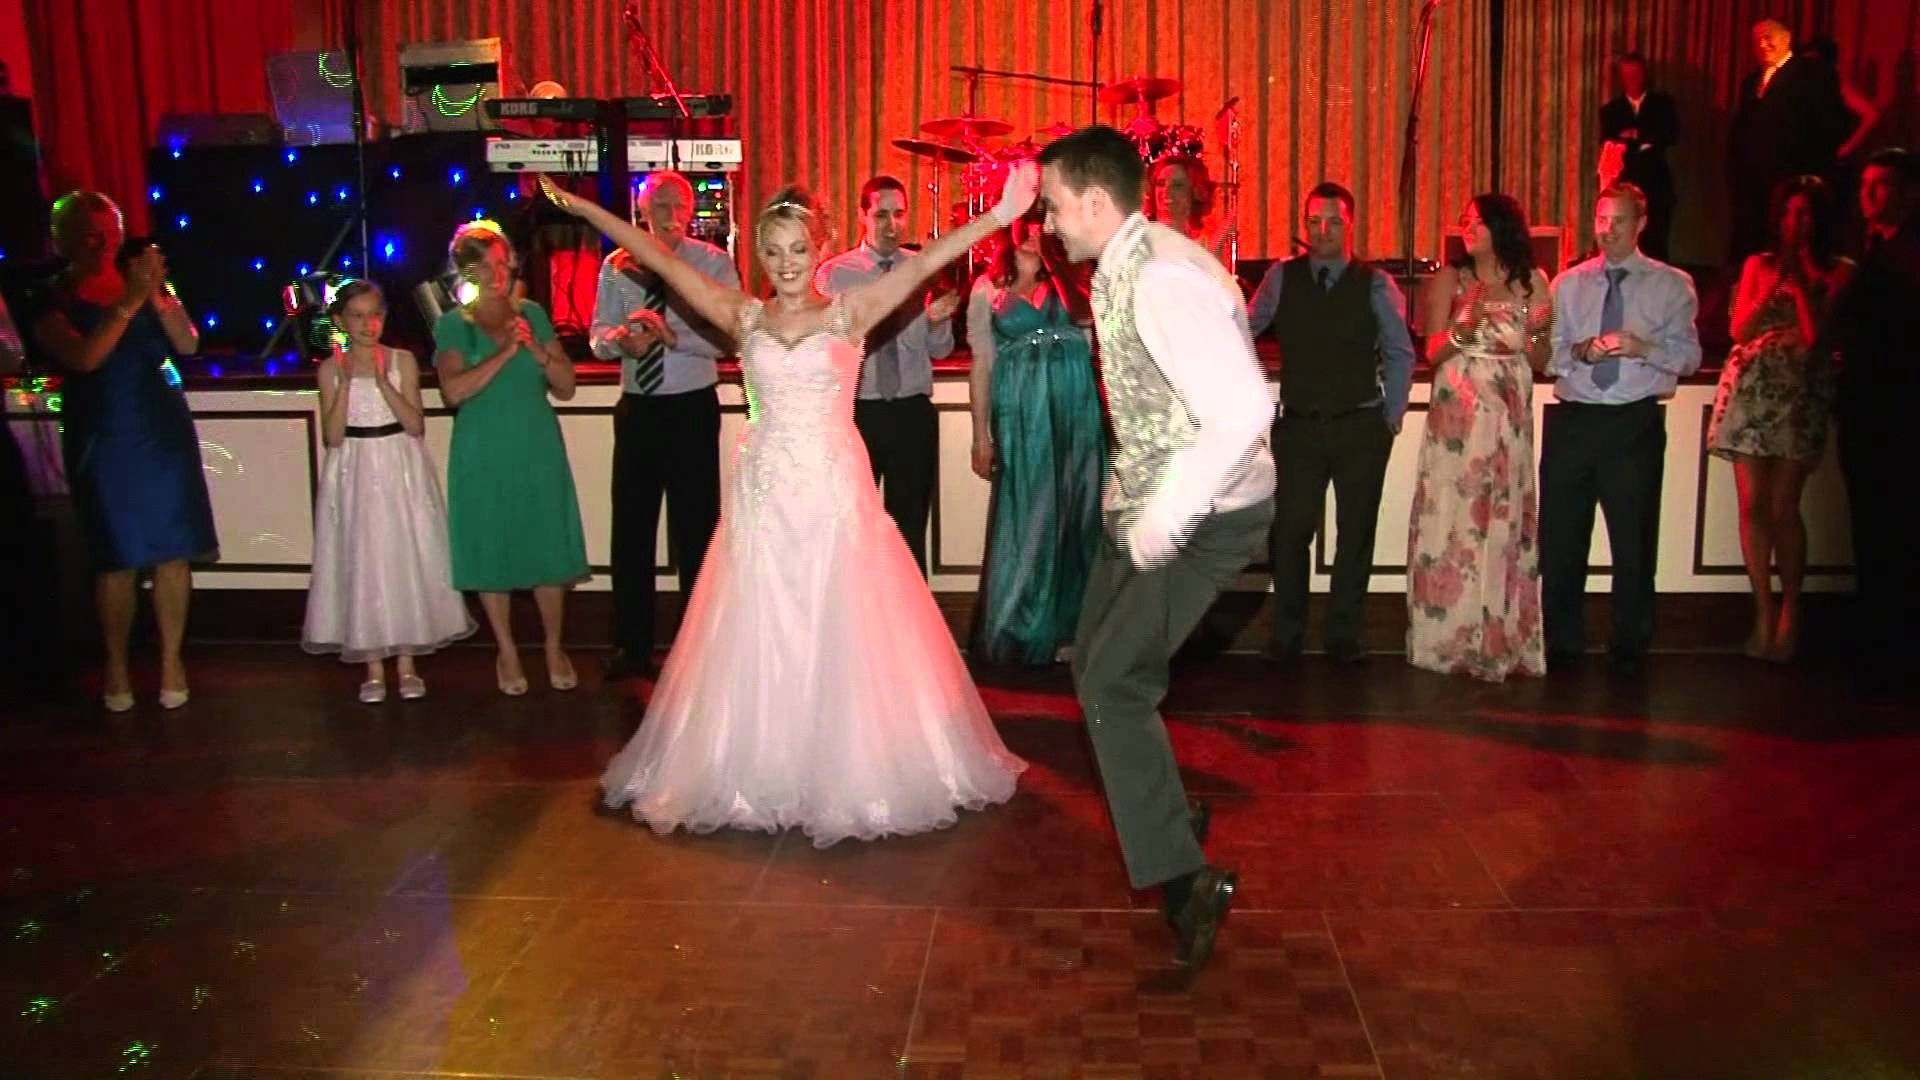 The Top 10 Wedding First Dance Songs In The Uk And Five